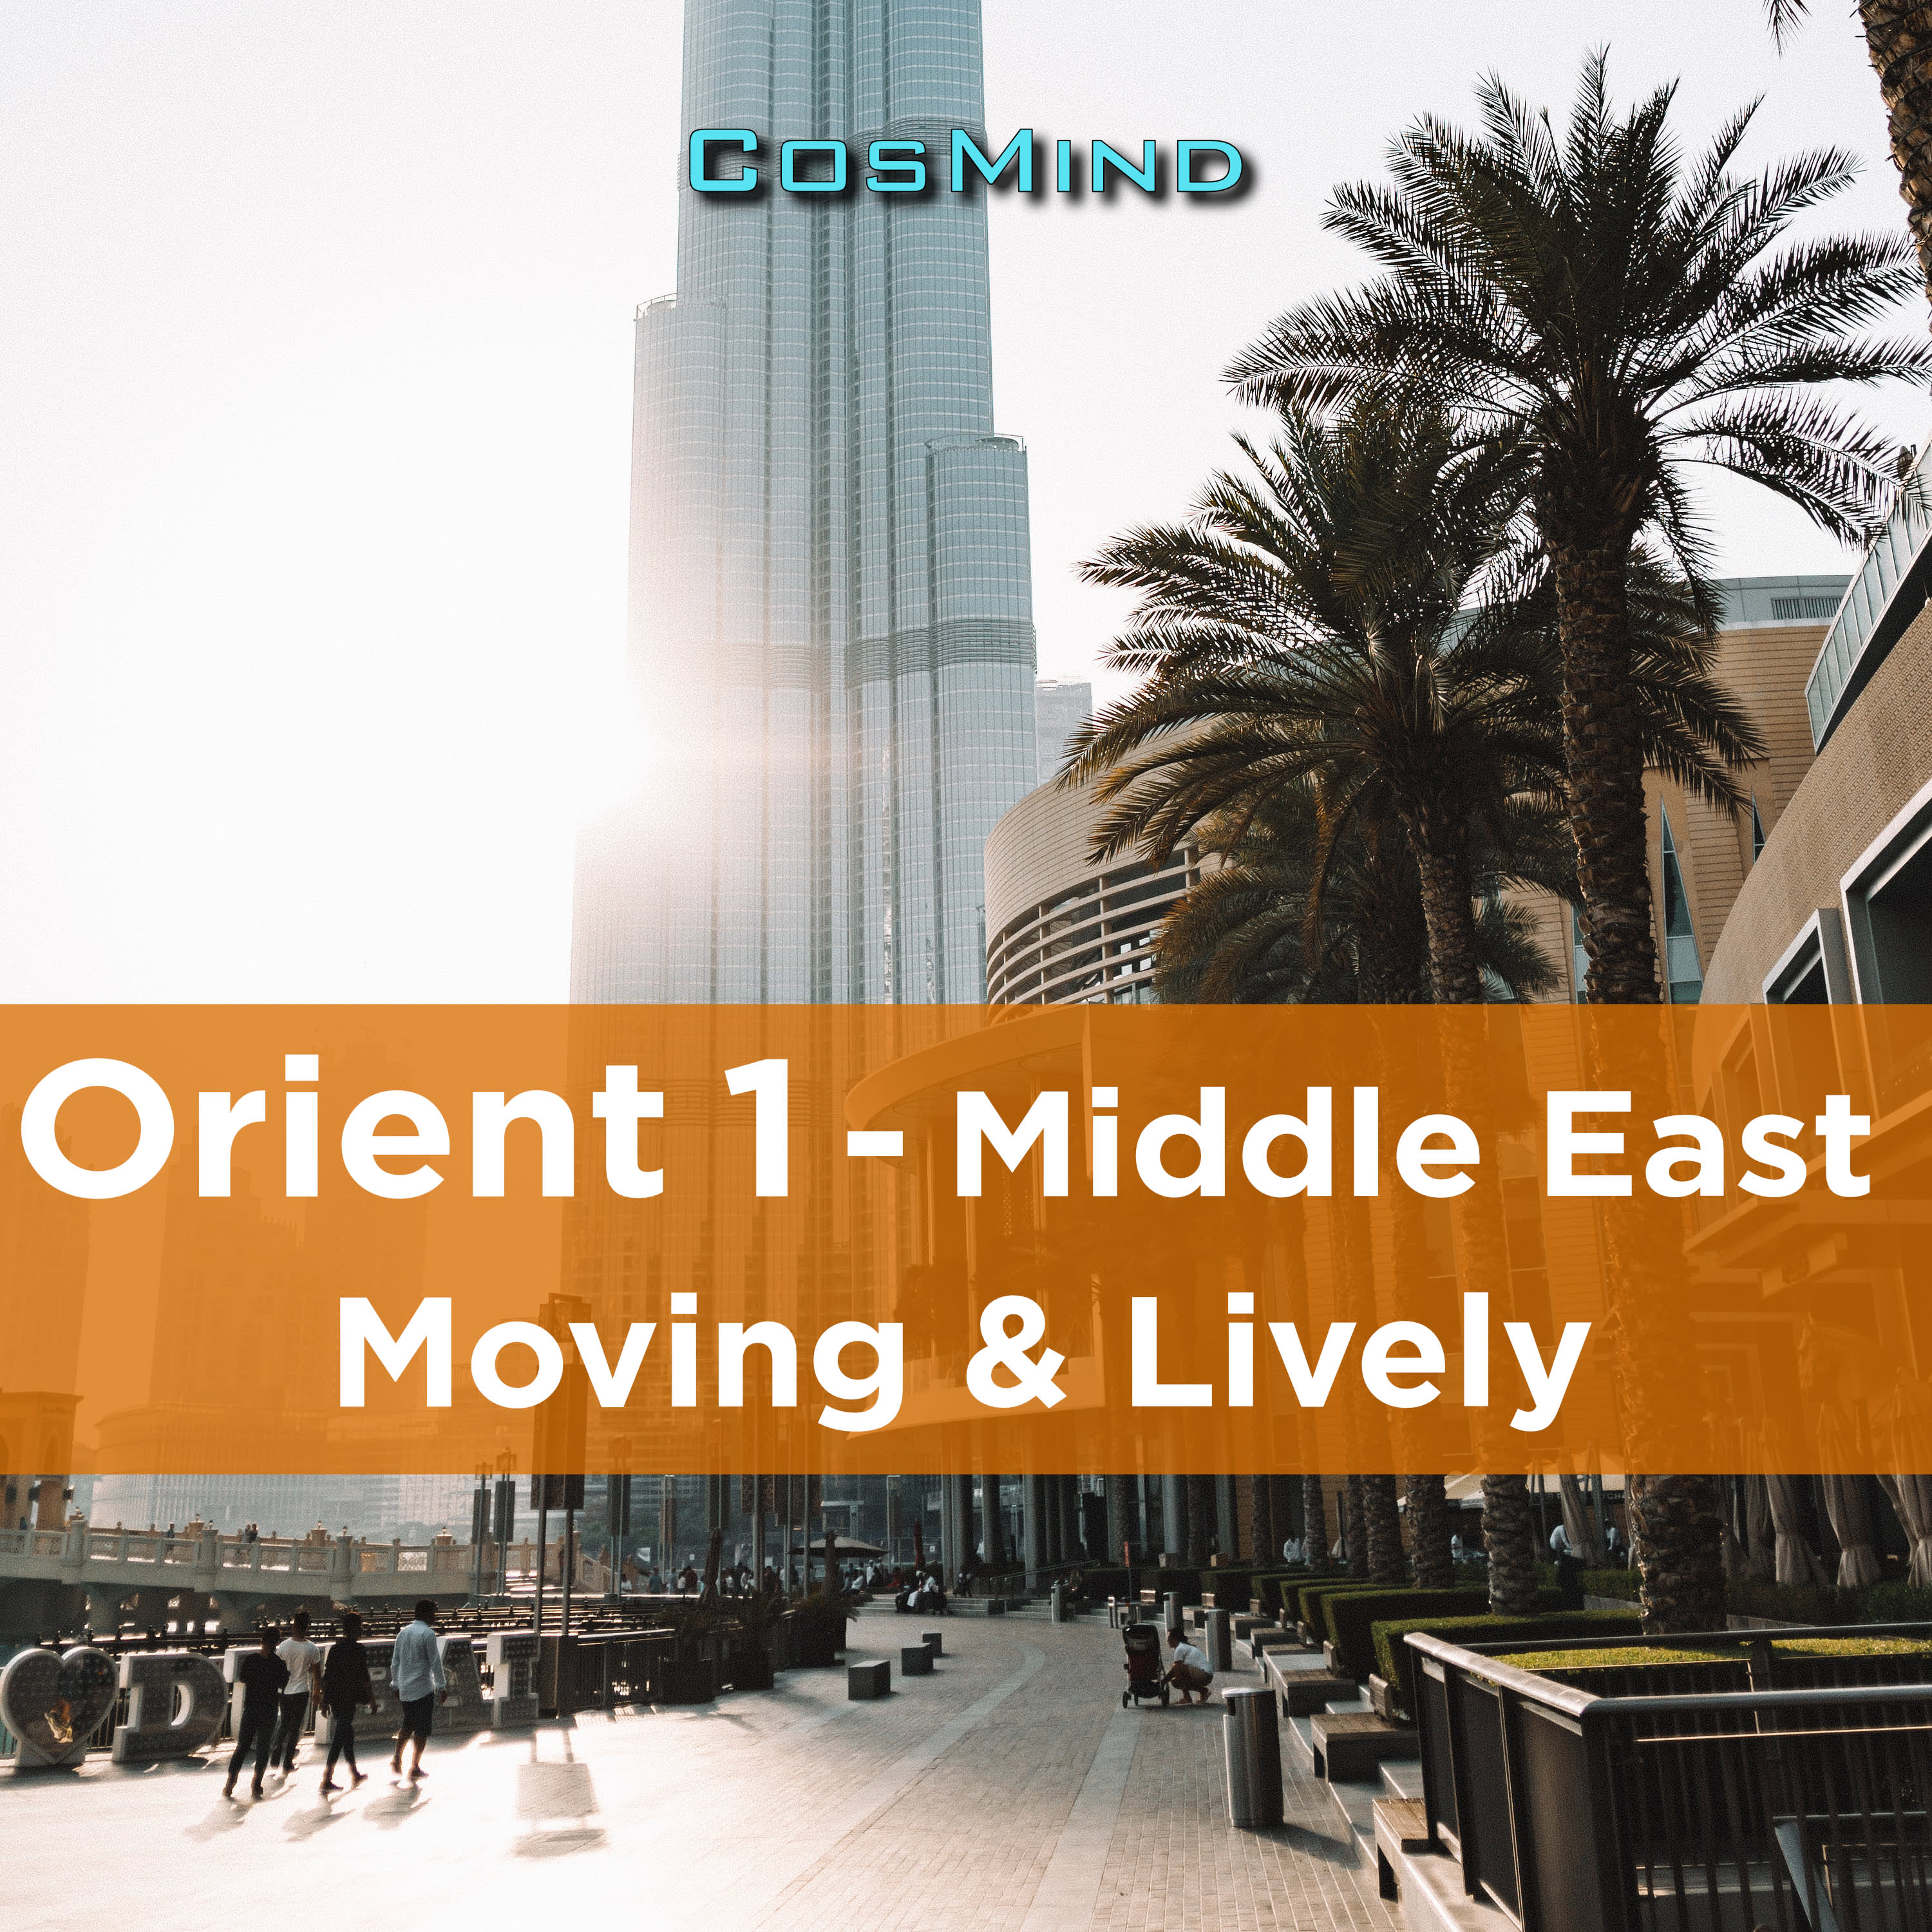 Moving Orient